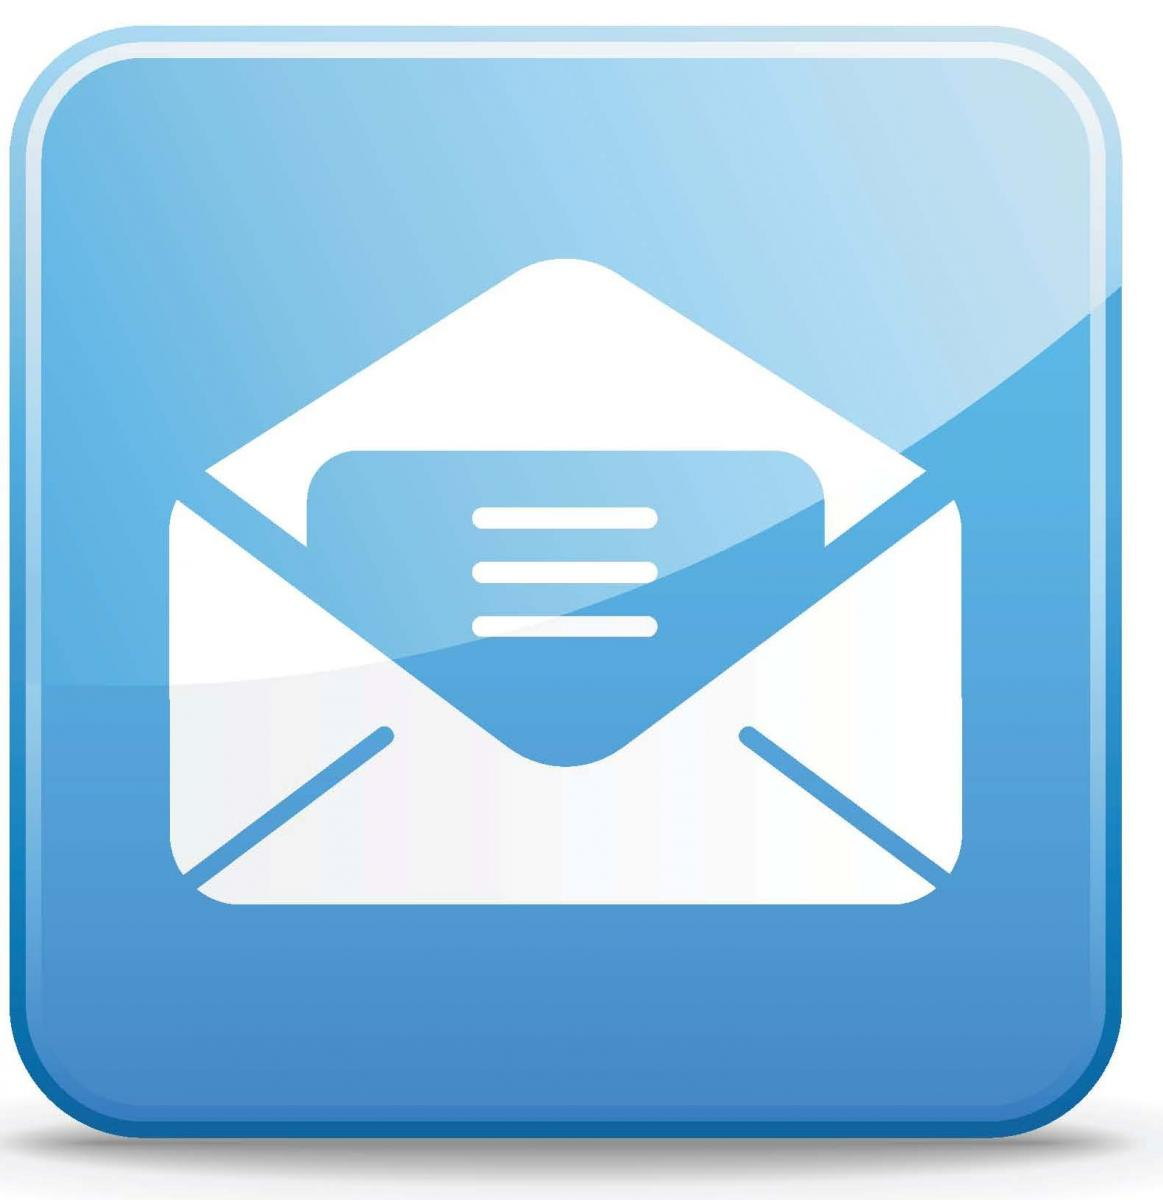 email-icon_0.jpg